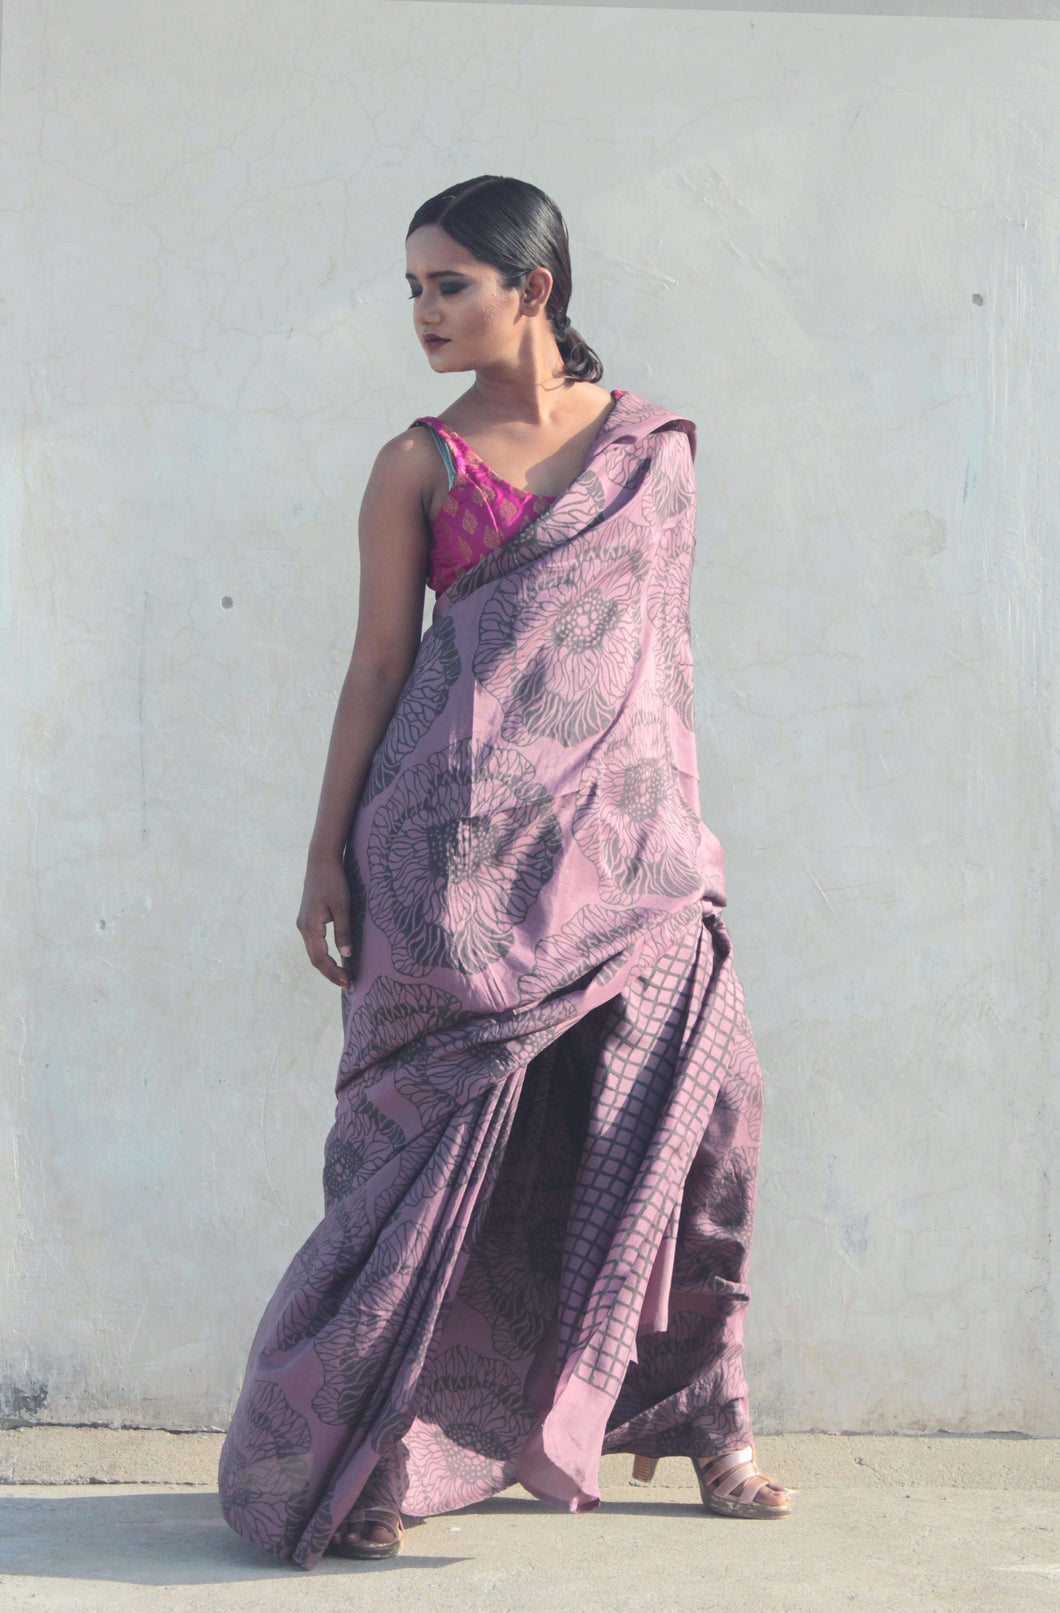 saree model standing in saree designed with floral prints